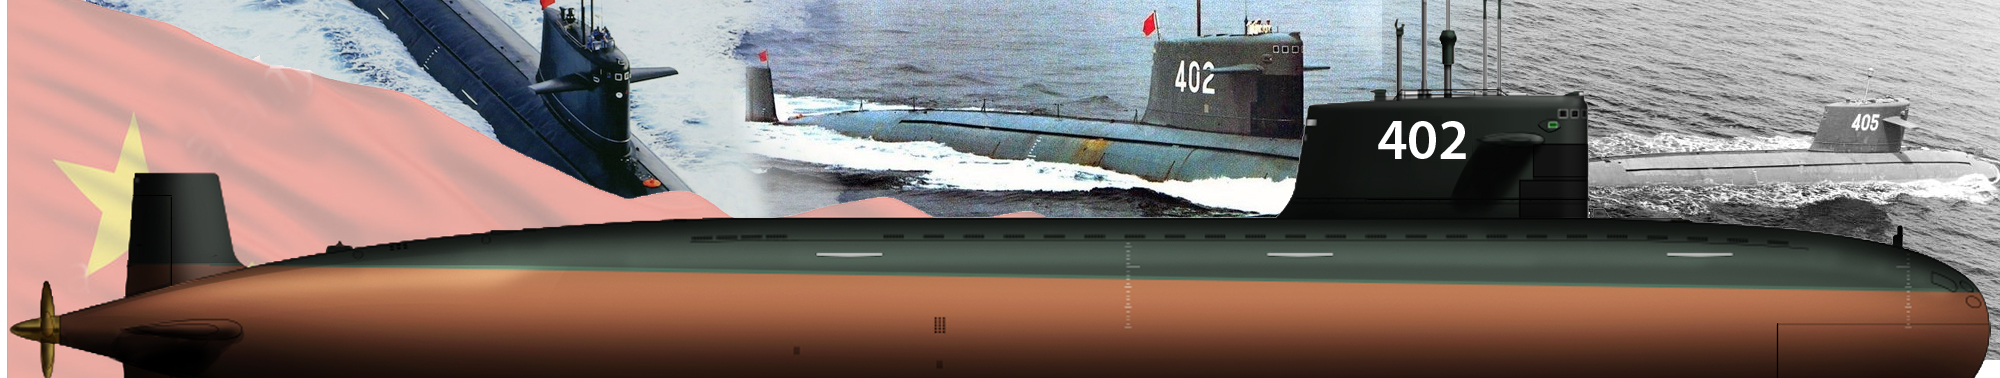 Type 091 (Han class) nuclear attack submarines (1970)